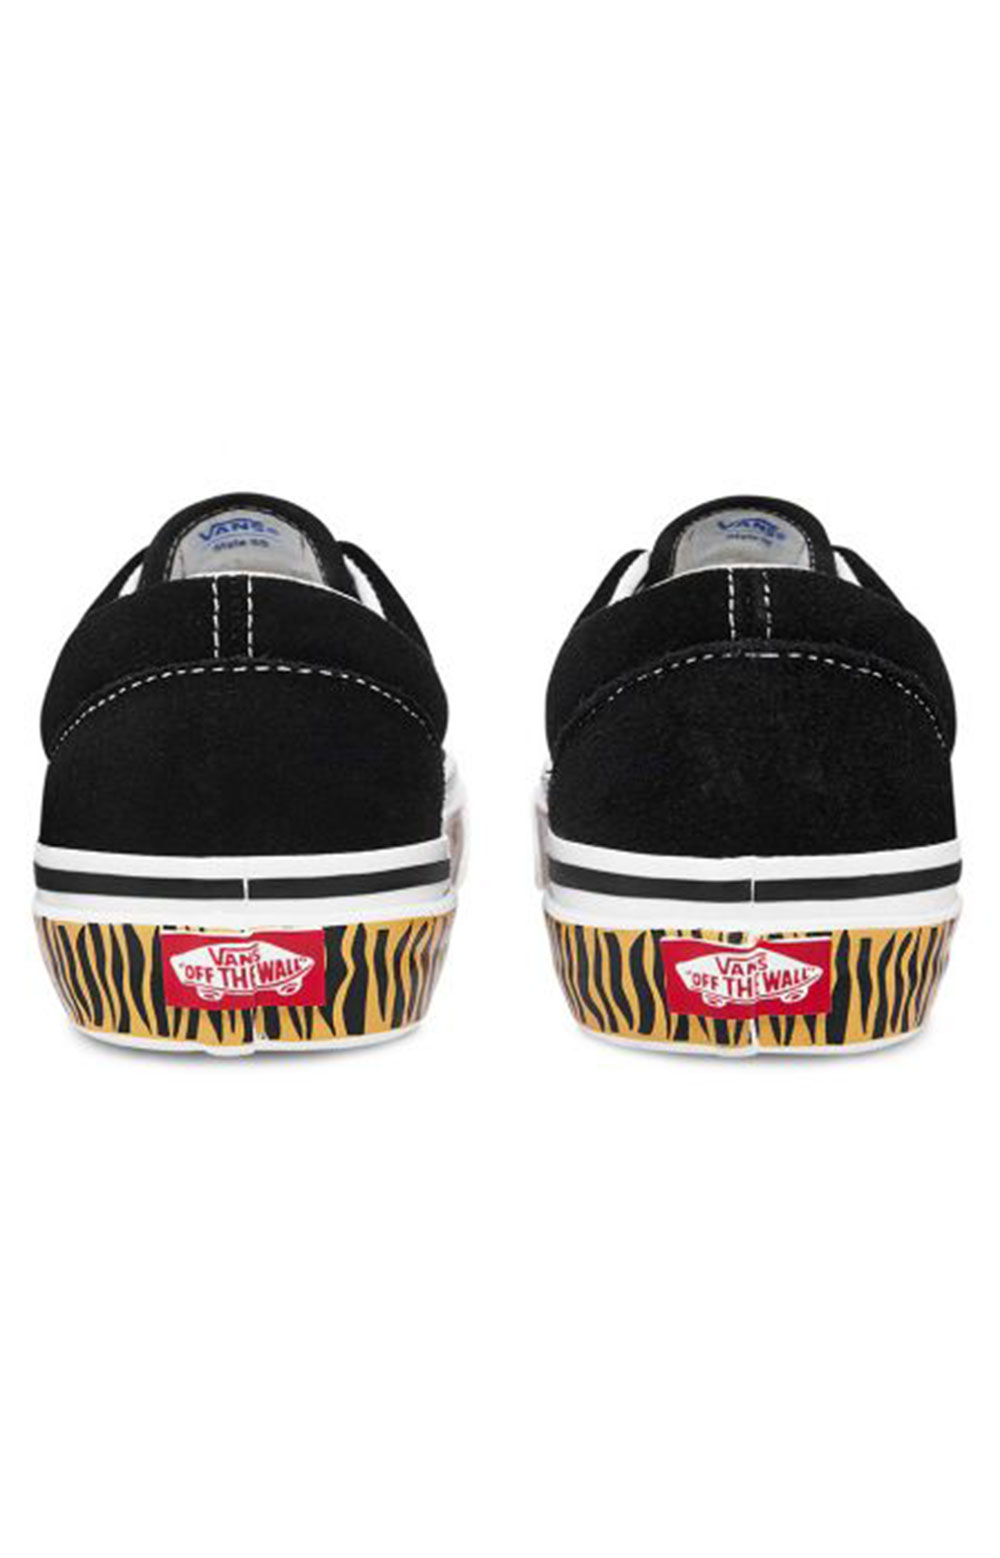 (RR11UY) Anaheim Factory Era Shoes - OG Black 5